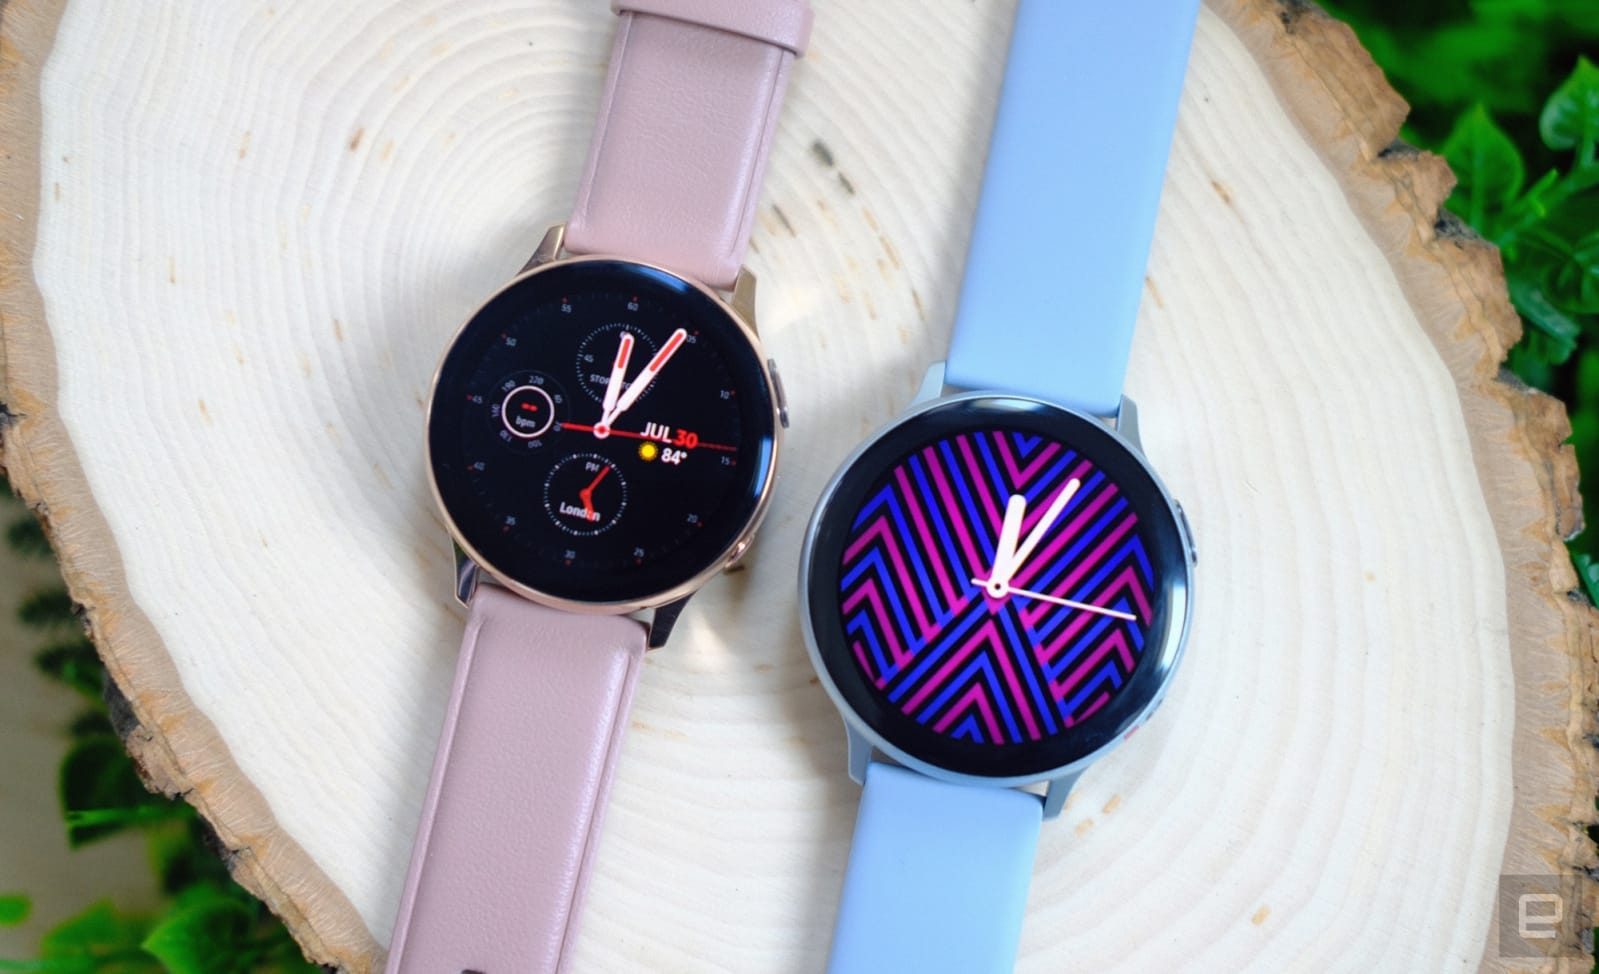 Samsung Galaxy Watch Active 2 hands-on